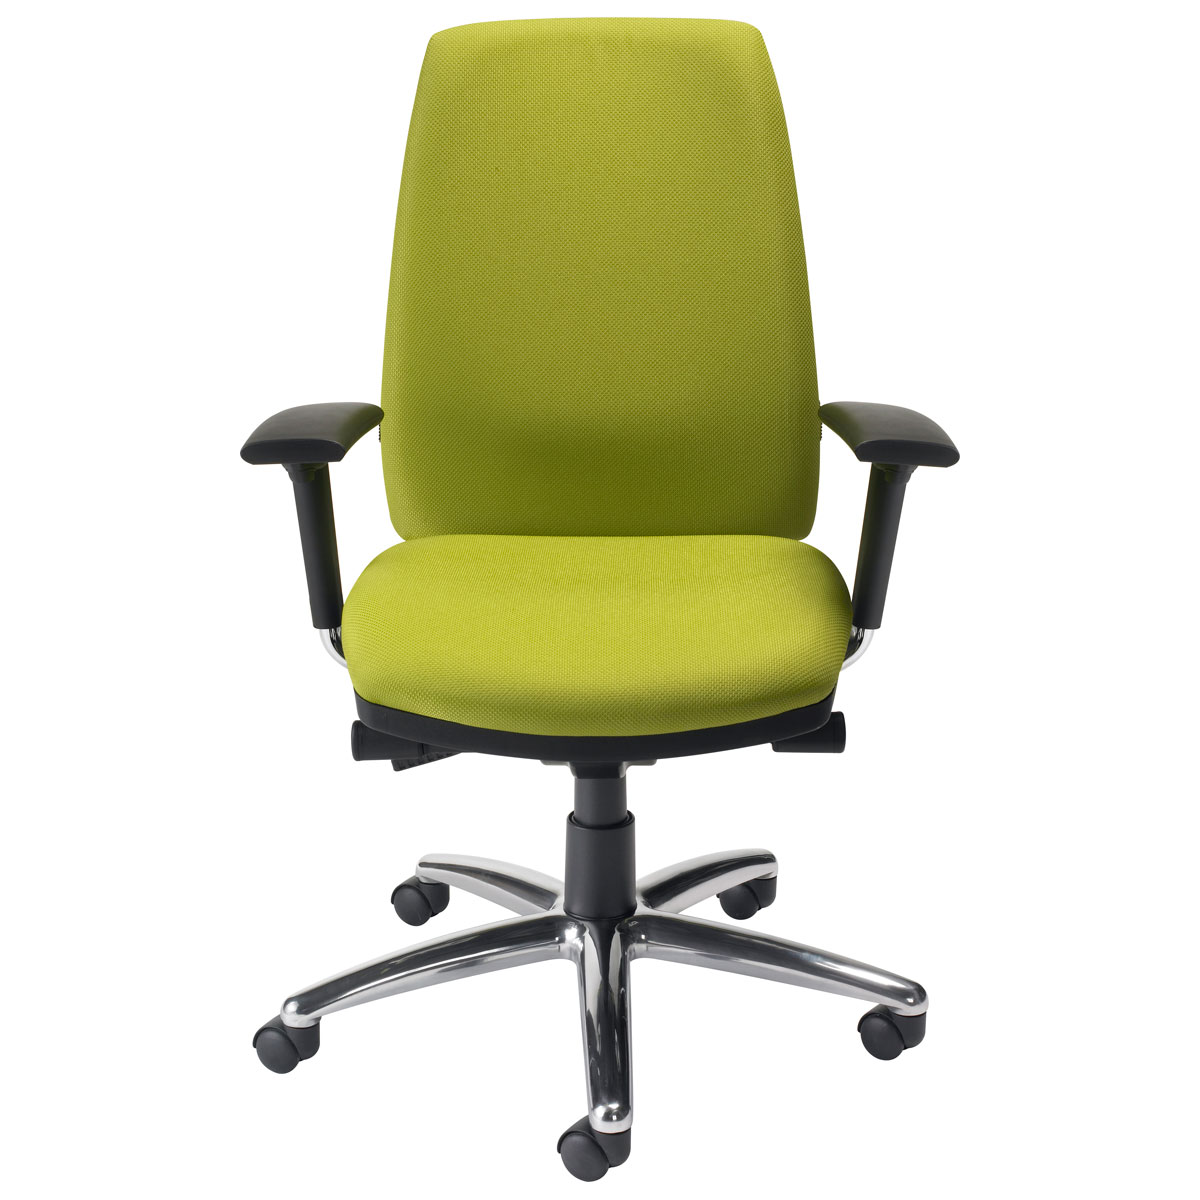 Shop Nightingale 7000 Veronna Chair at The Human Solution